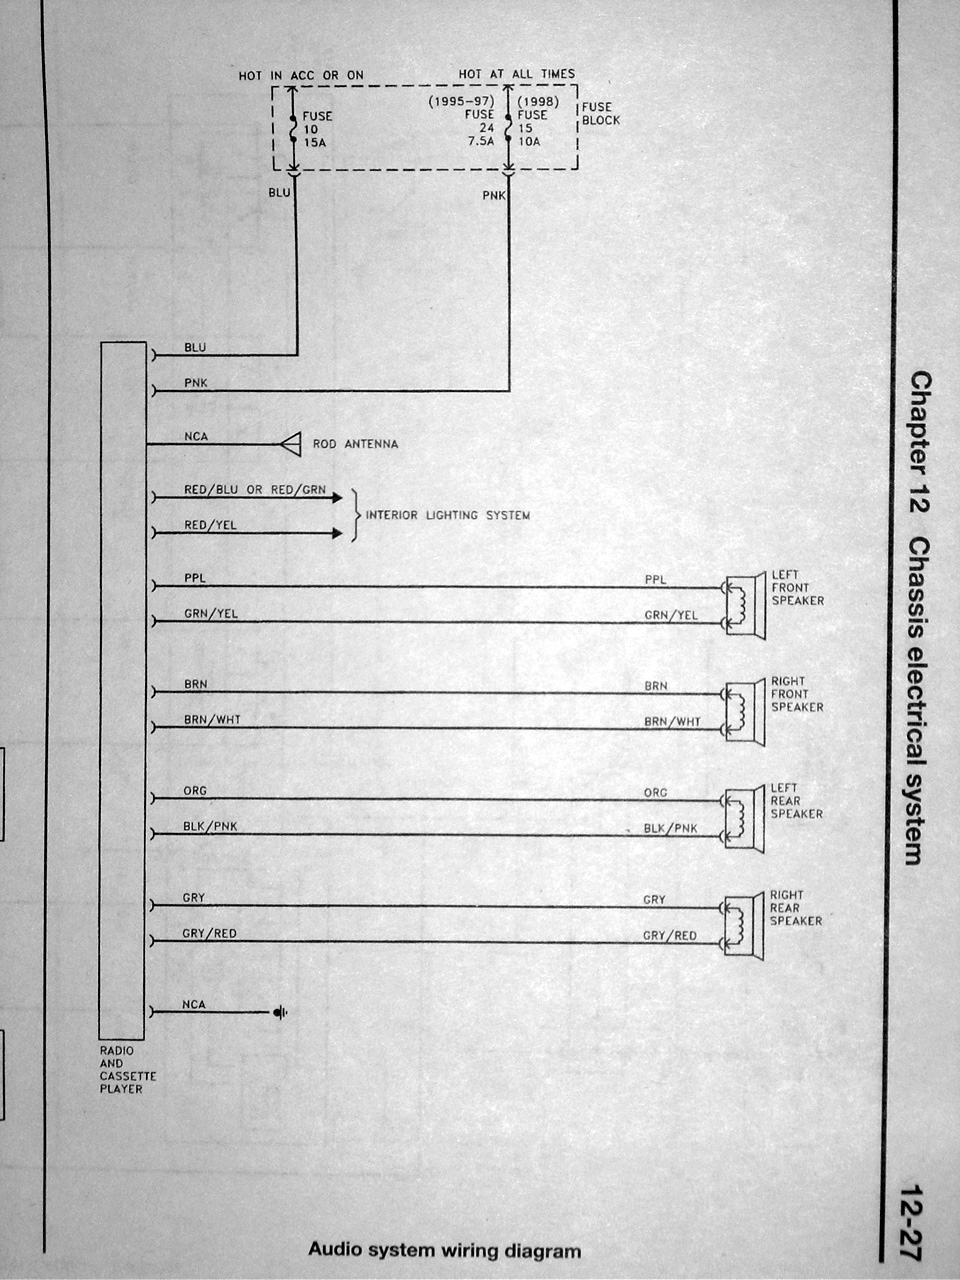 DSC01849 wiring diagram thread *useful info* nissan forum 2002 nissan sentra headlight wiring diagram at mifinder.co